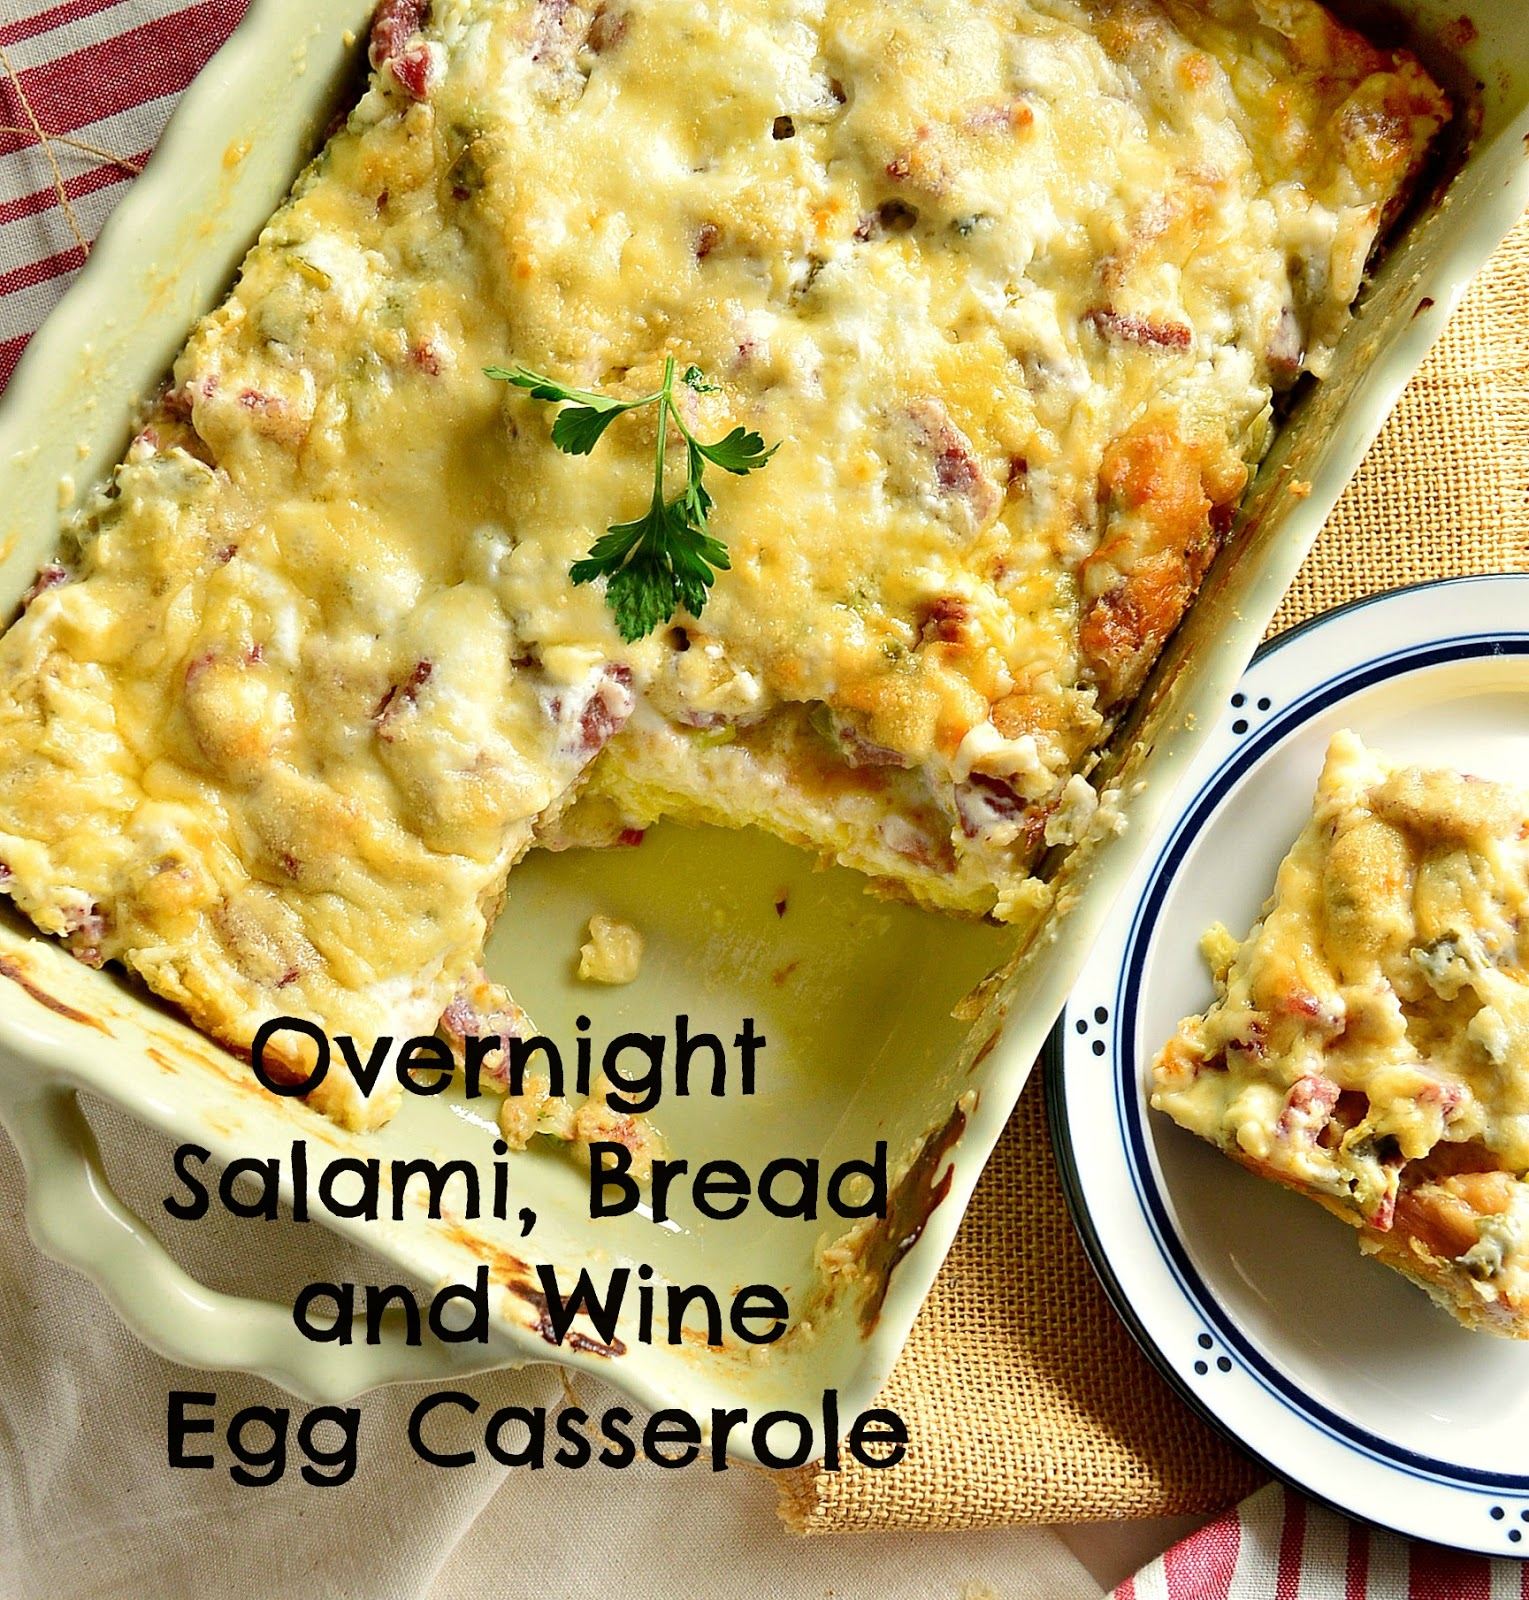 This Is How I Cook: Overnight Egg Casserole With Salami